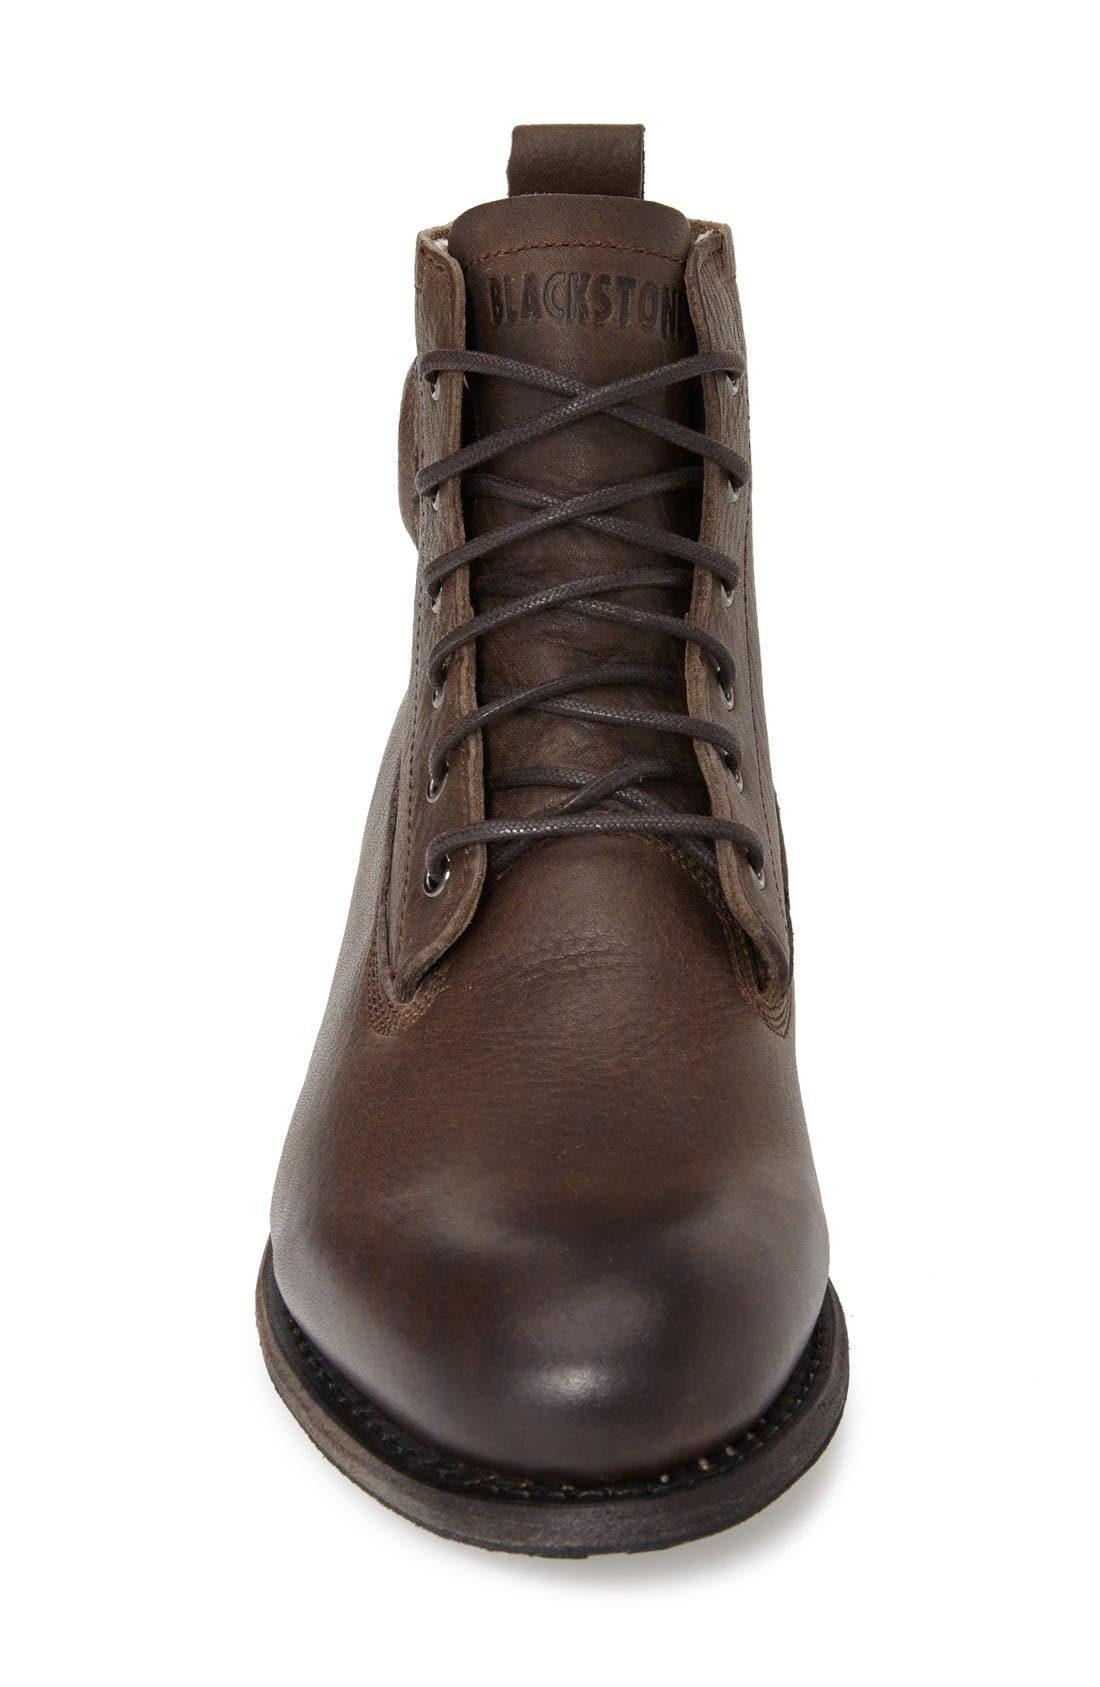 Alternate Image 3  - Blackstone 'Gull' Plain Toe Boot (Men)